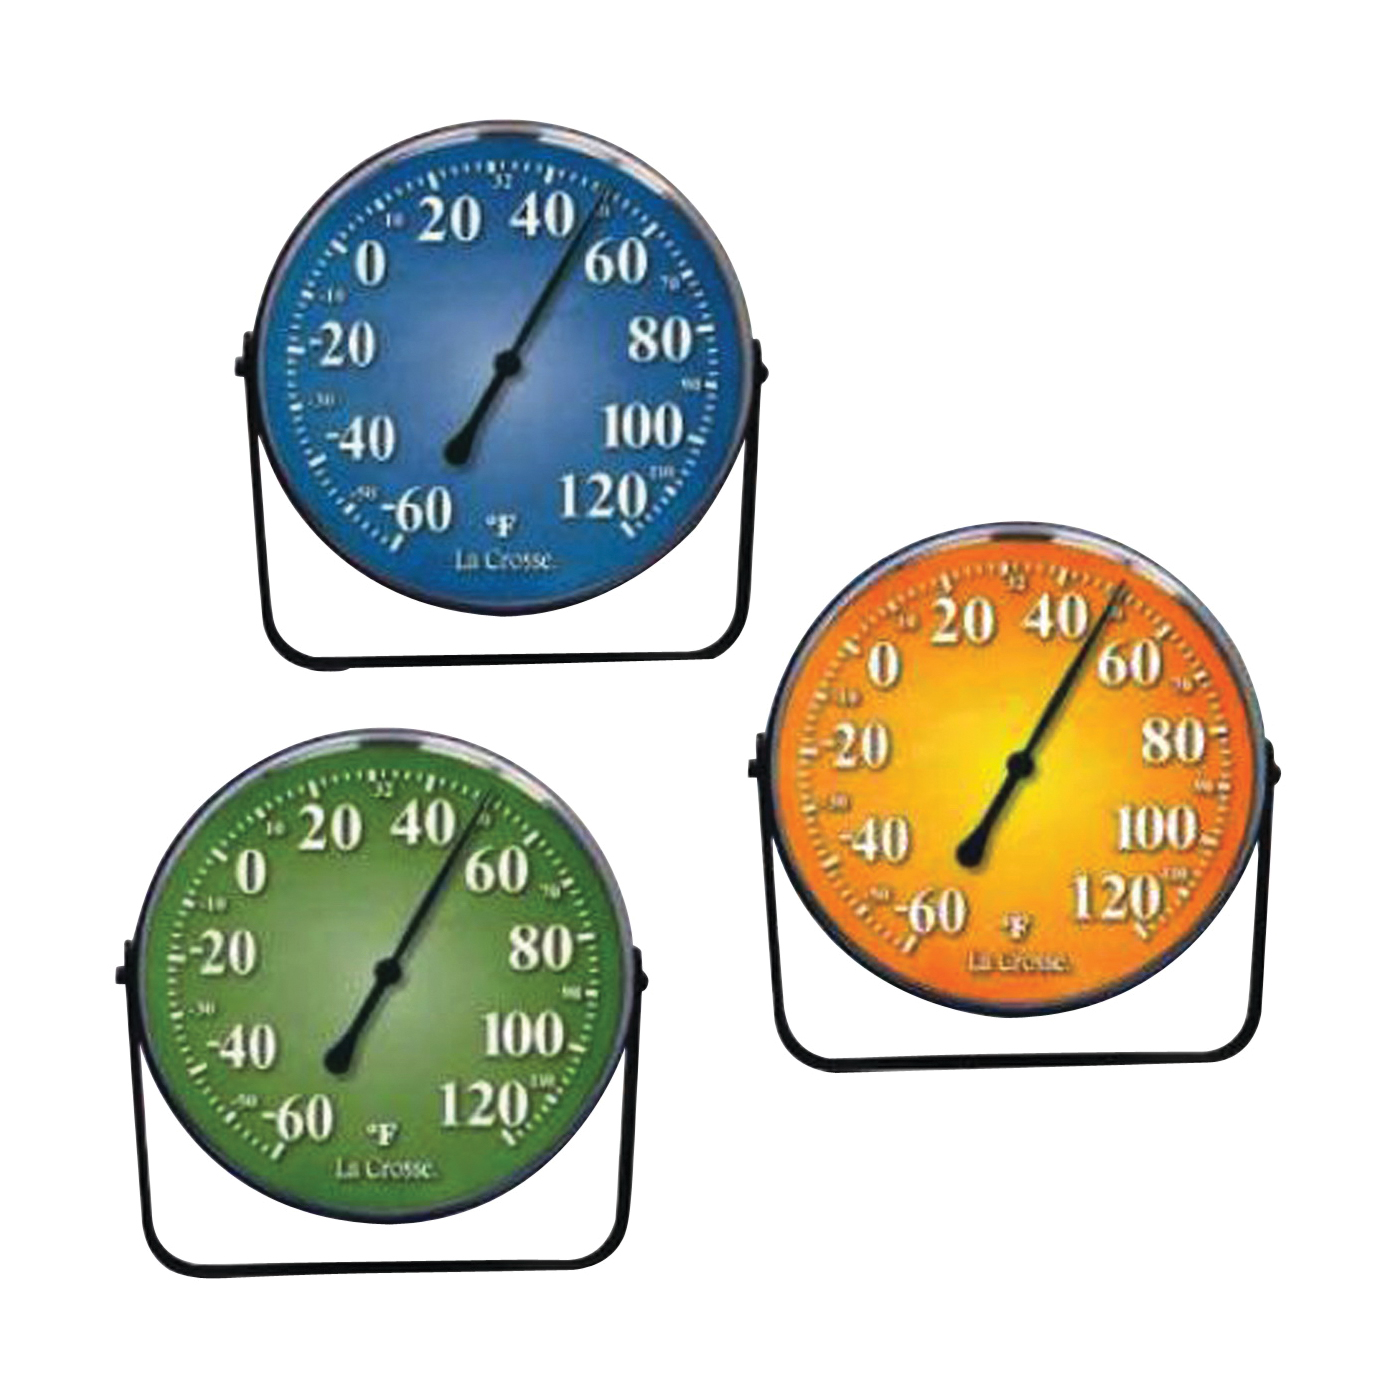 Picture of La Crosse 104-1512 Variety Pack Thermometer, 5 in Display, -60 to 120 deg F, Metal Casing